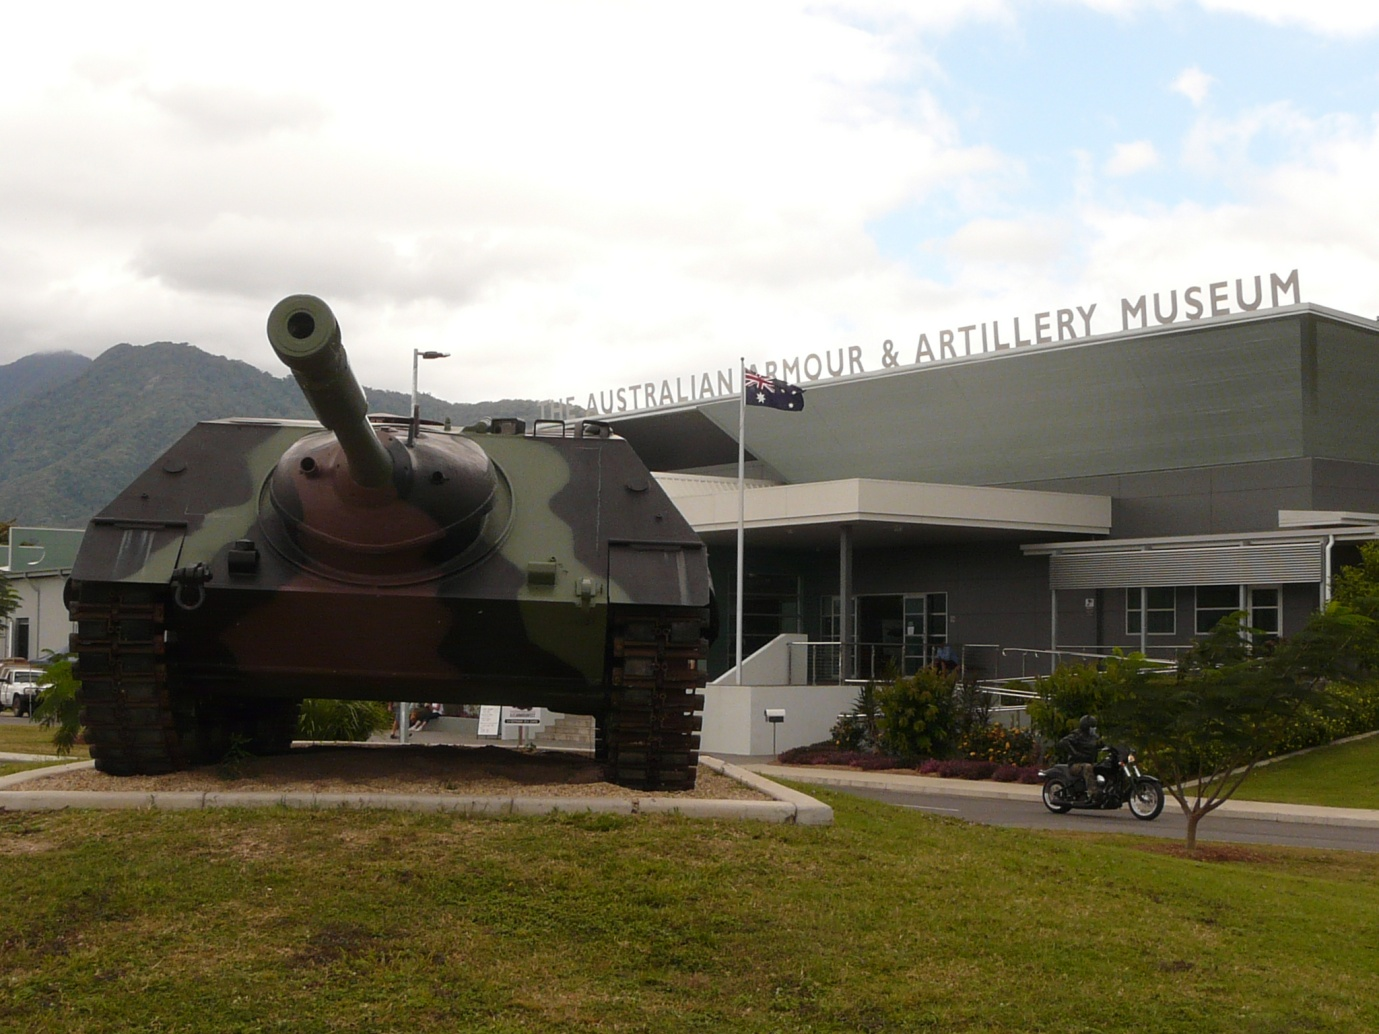 As a taste of what is to come, the entry is dominated by this self propelled artillery piece.